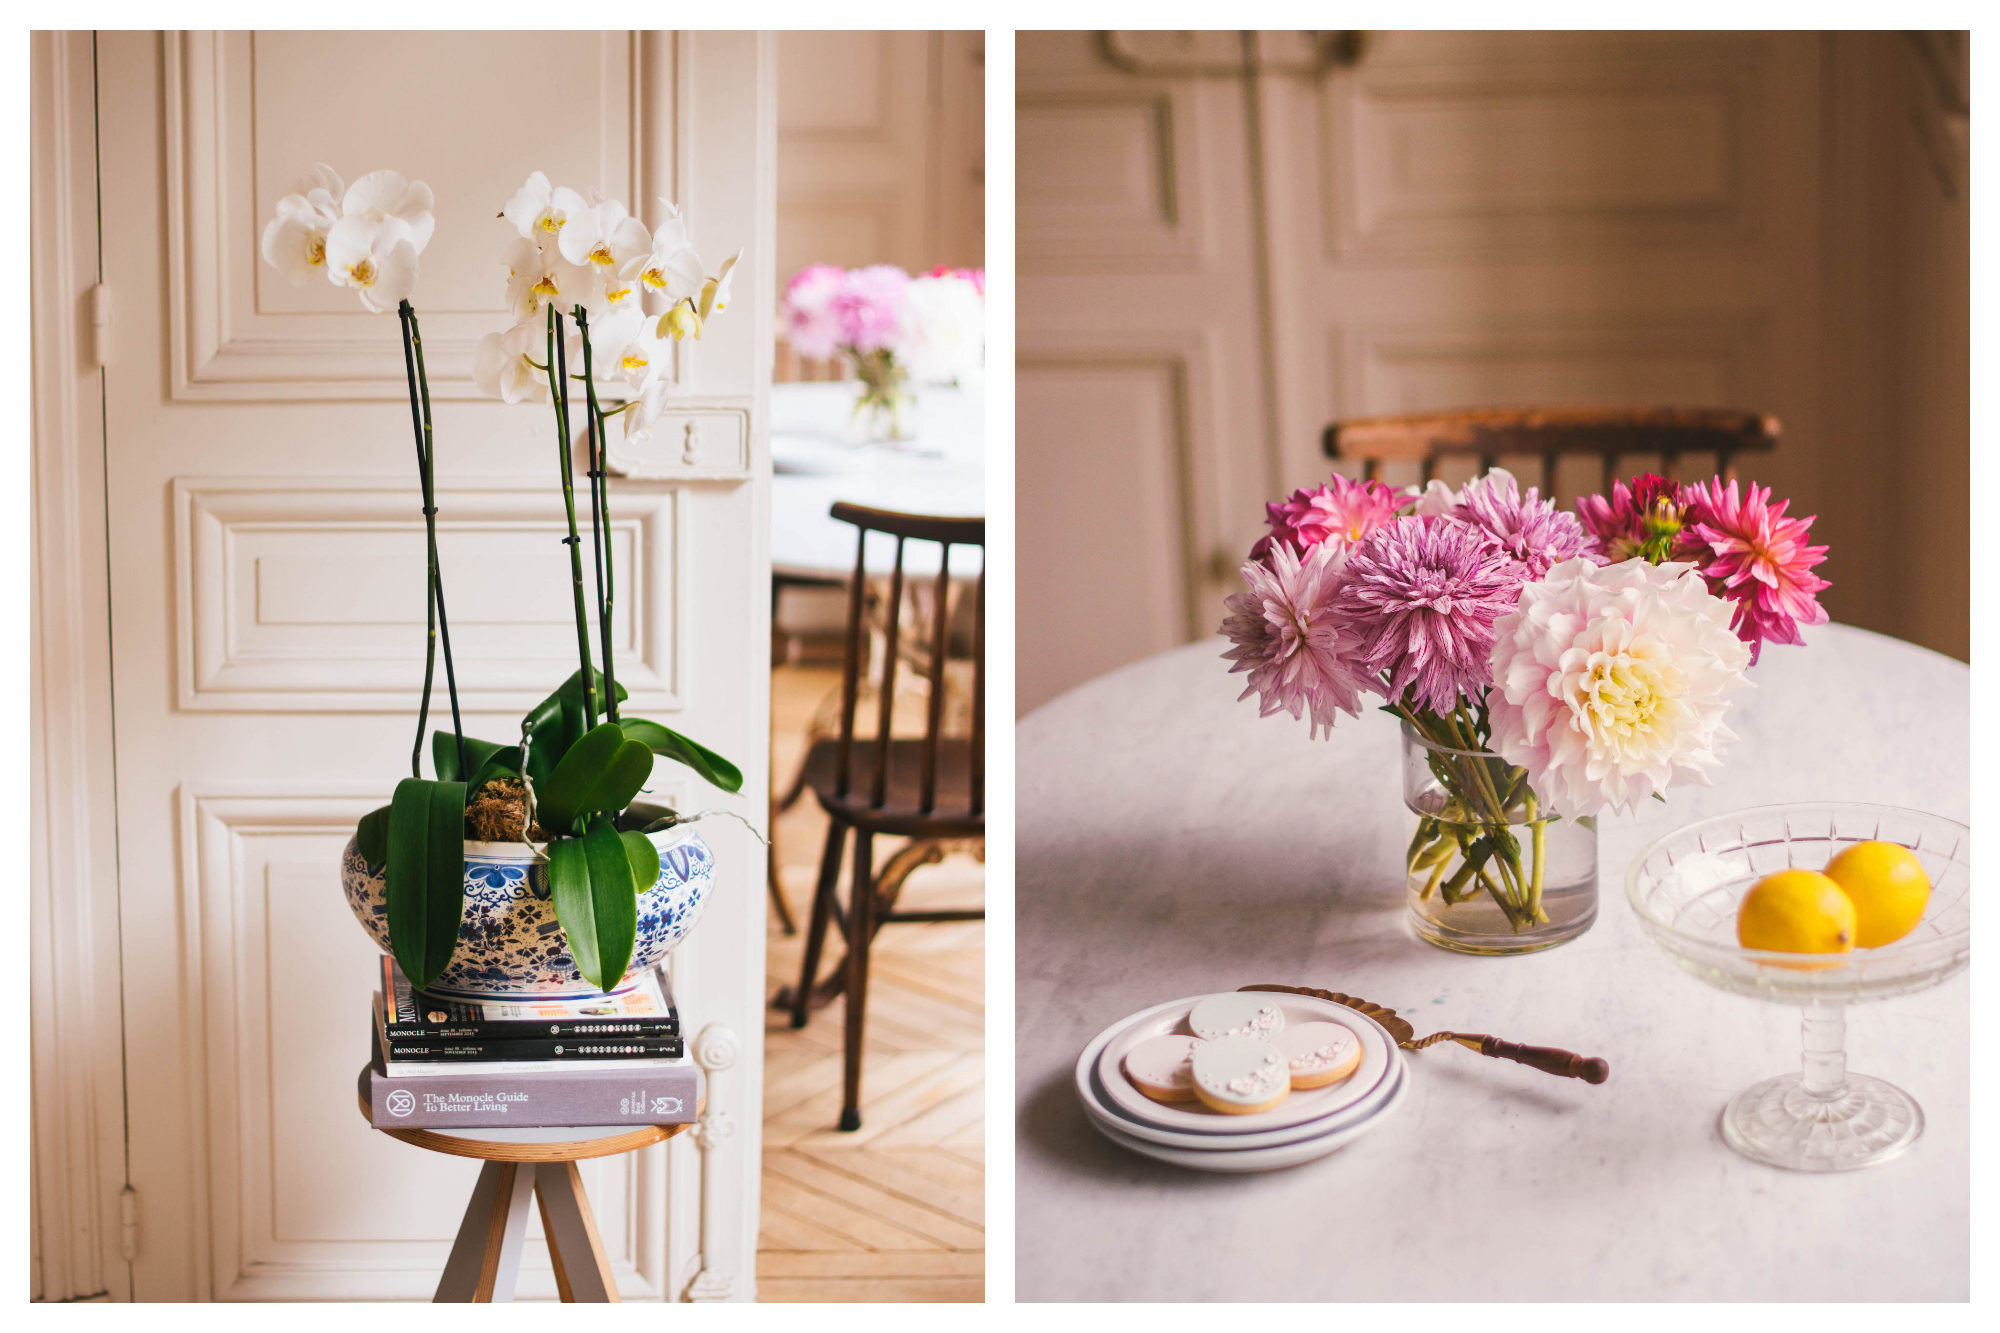 A ceramic pot of white orchids standing on books on a wooden stool inside Frank's dreamy Paris apartment (left). A vase of pink and purple dahlias on a table next to some of Frank's biscuits (right).